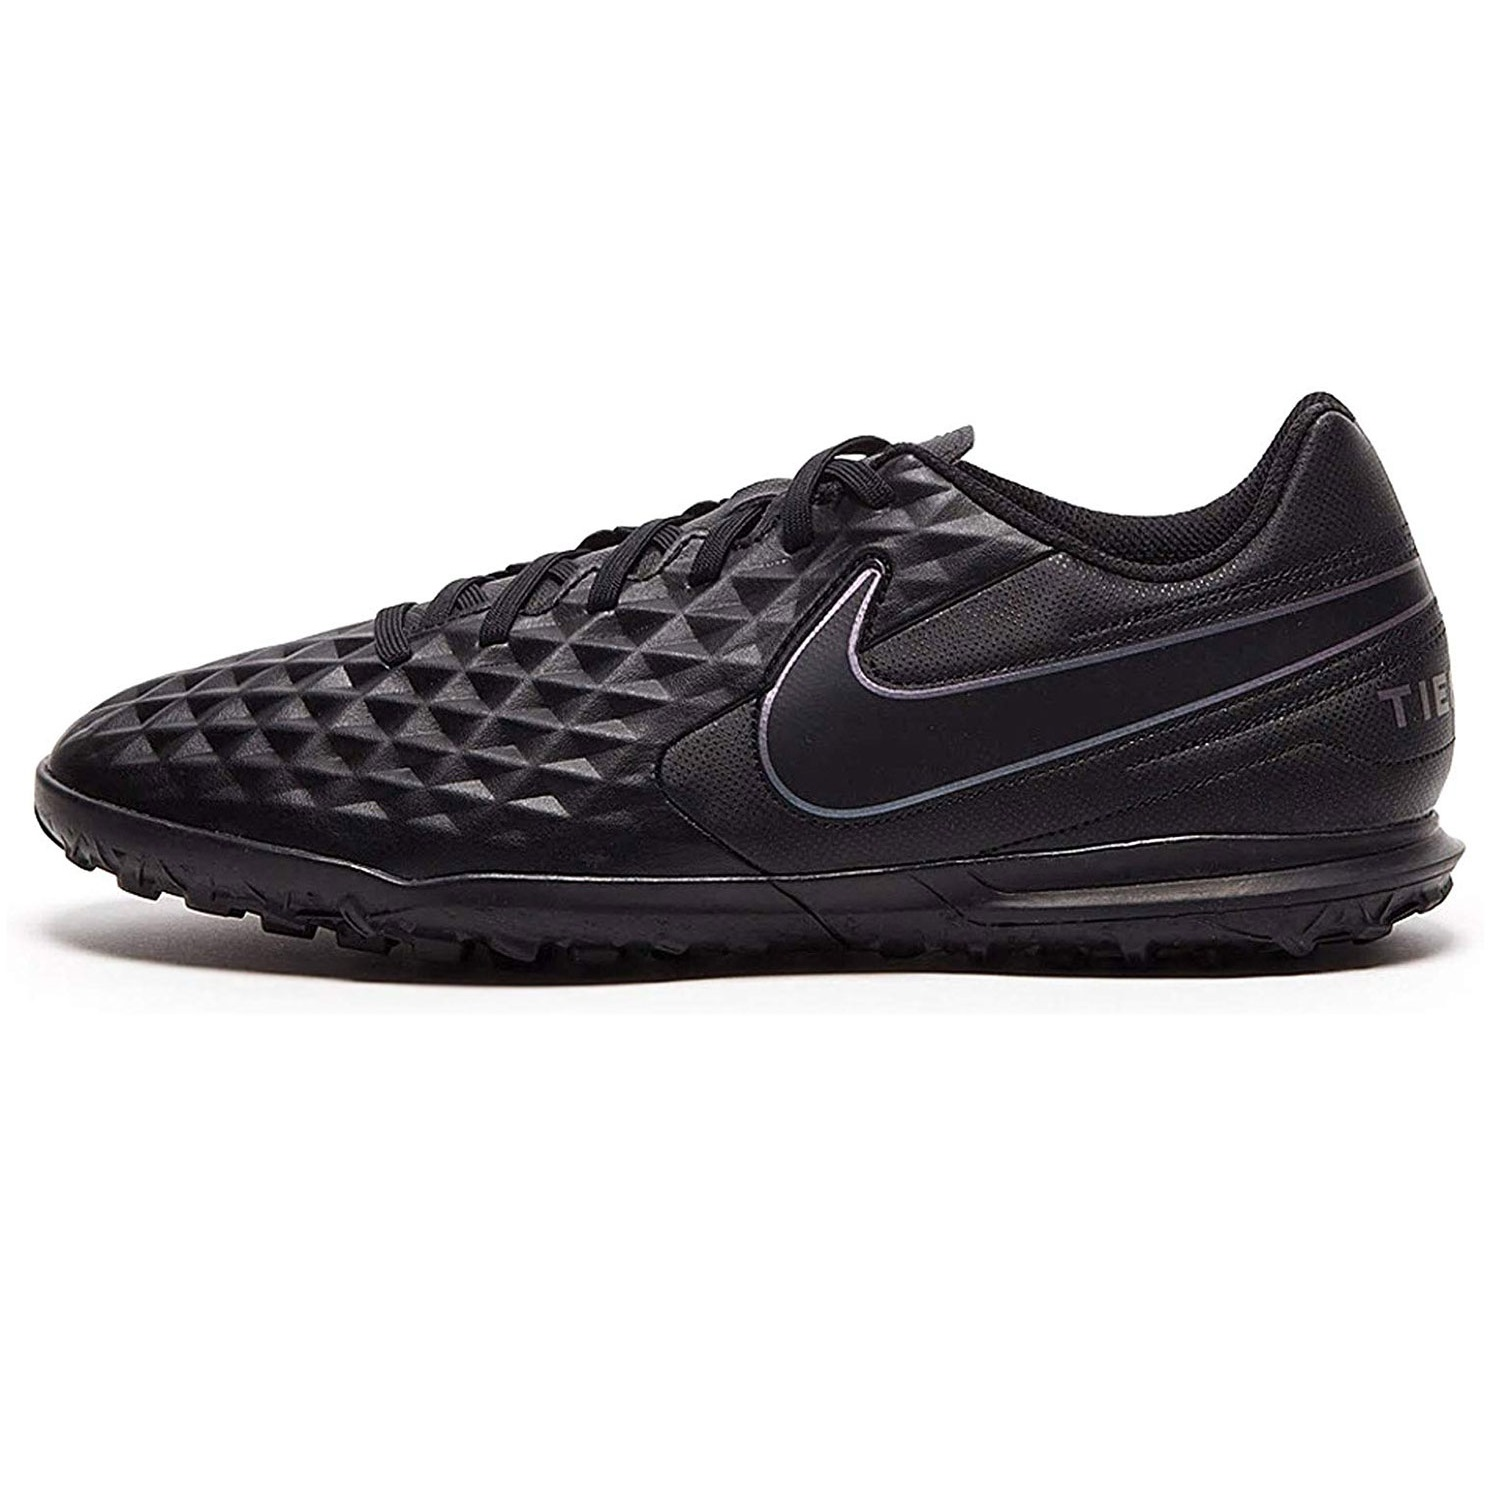 NIKE LEGEND 8 CLUB TF AT6109-010